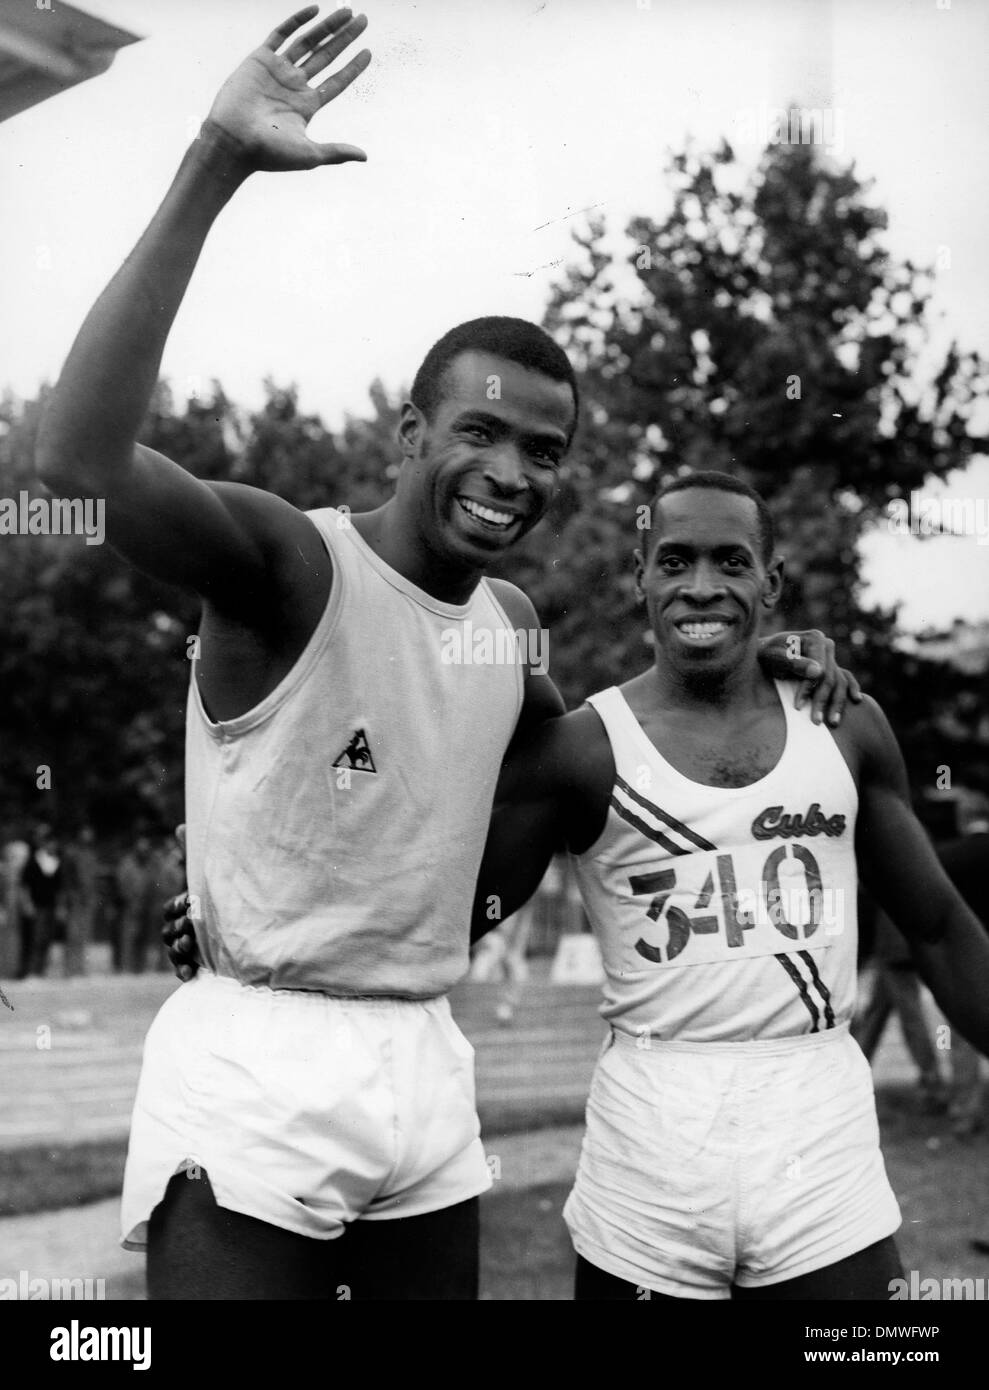 Jun 31, 1968; Paris, France; Runner ROGER BAMBUCK sets a 100 meter record, pictured with ENRIQUE FIGUEROLA. (Credit - Stock Image